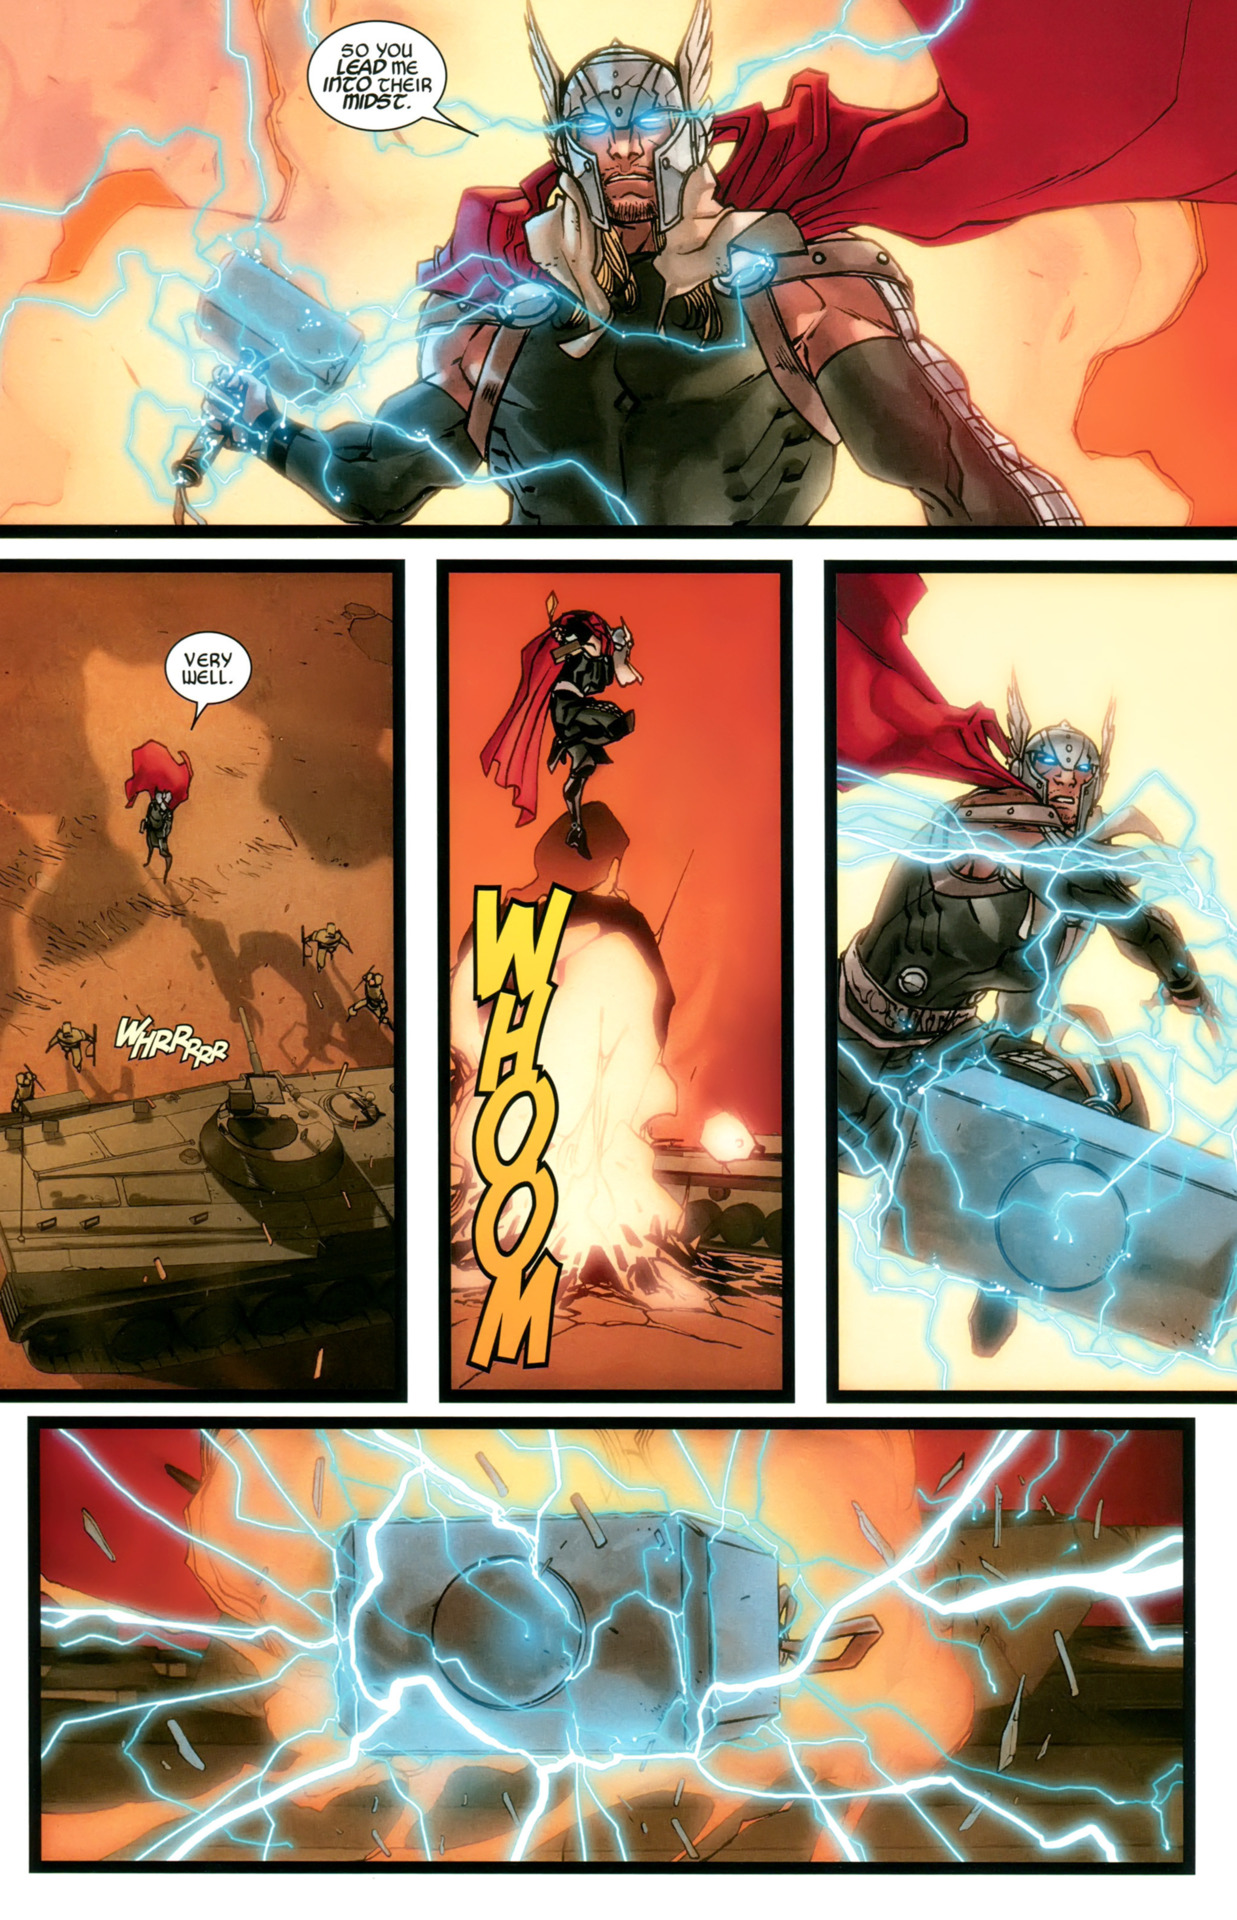 Easily avoids a tank shell and blitzes the tank with Mjolnir